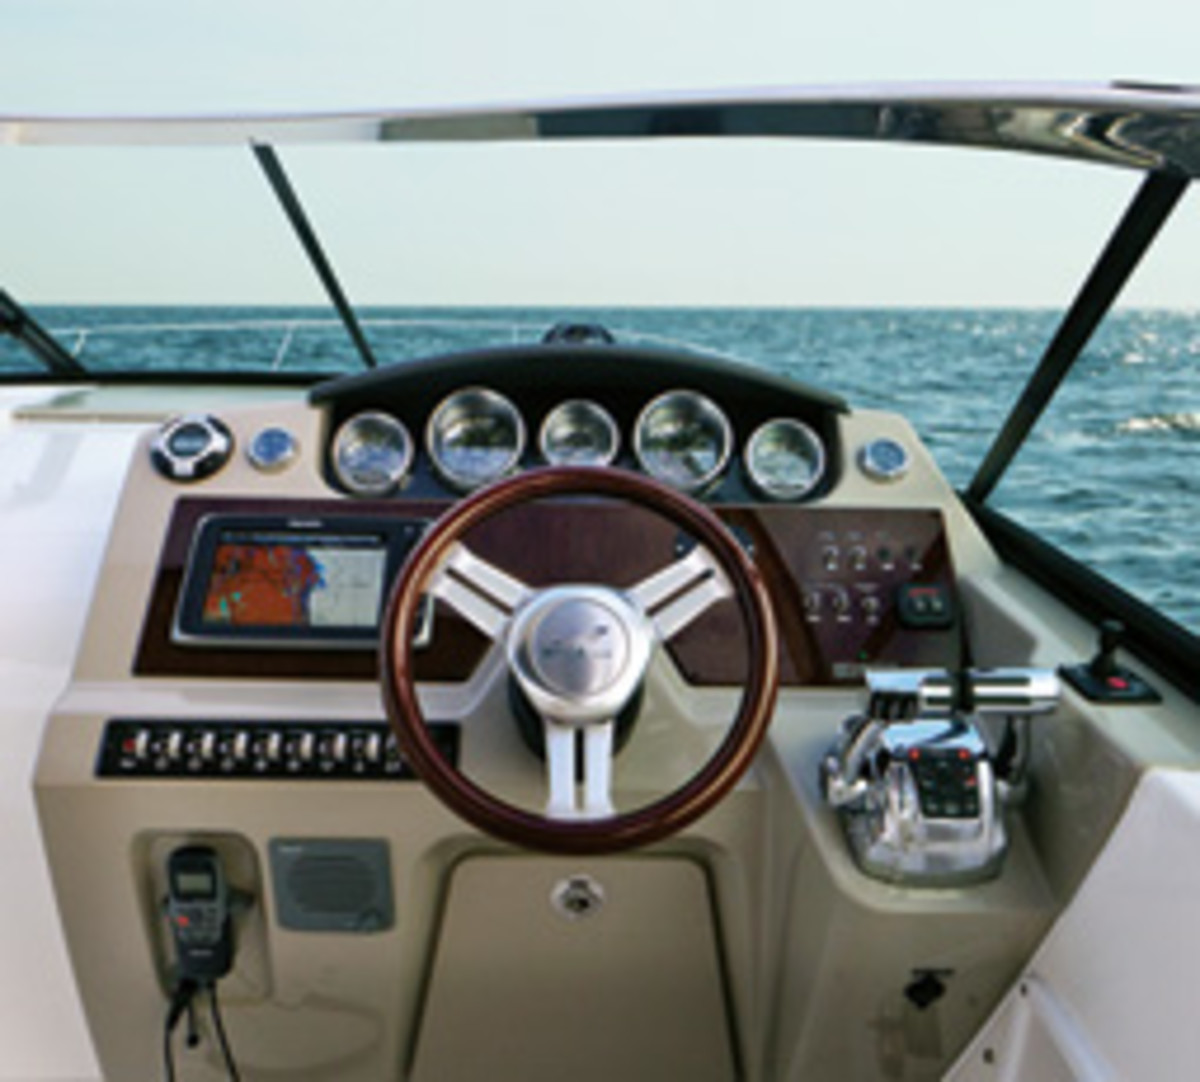 The Sea Ray's helm has well-placed gauges and controls, and there is liittle to obstruct the view through the windshield.